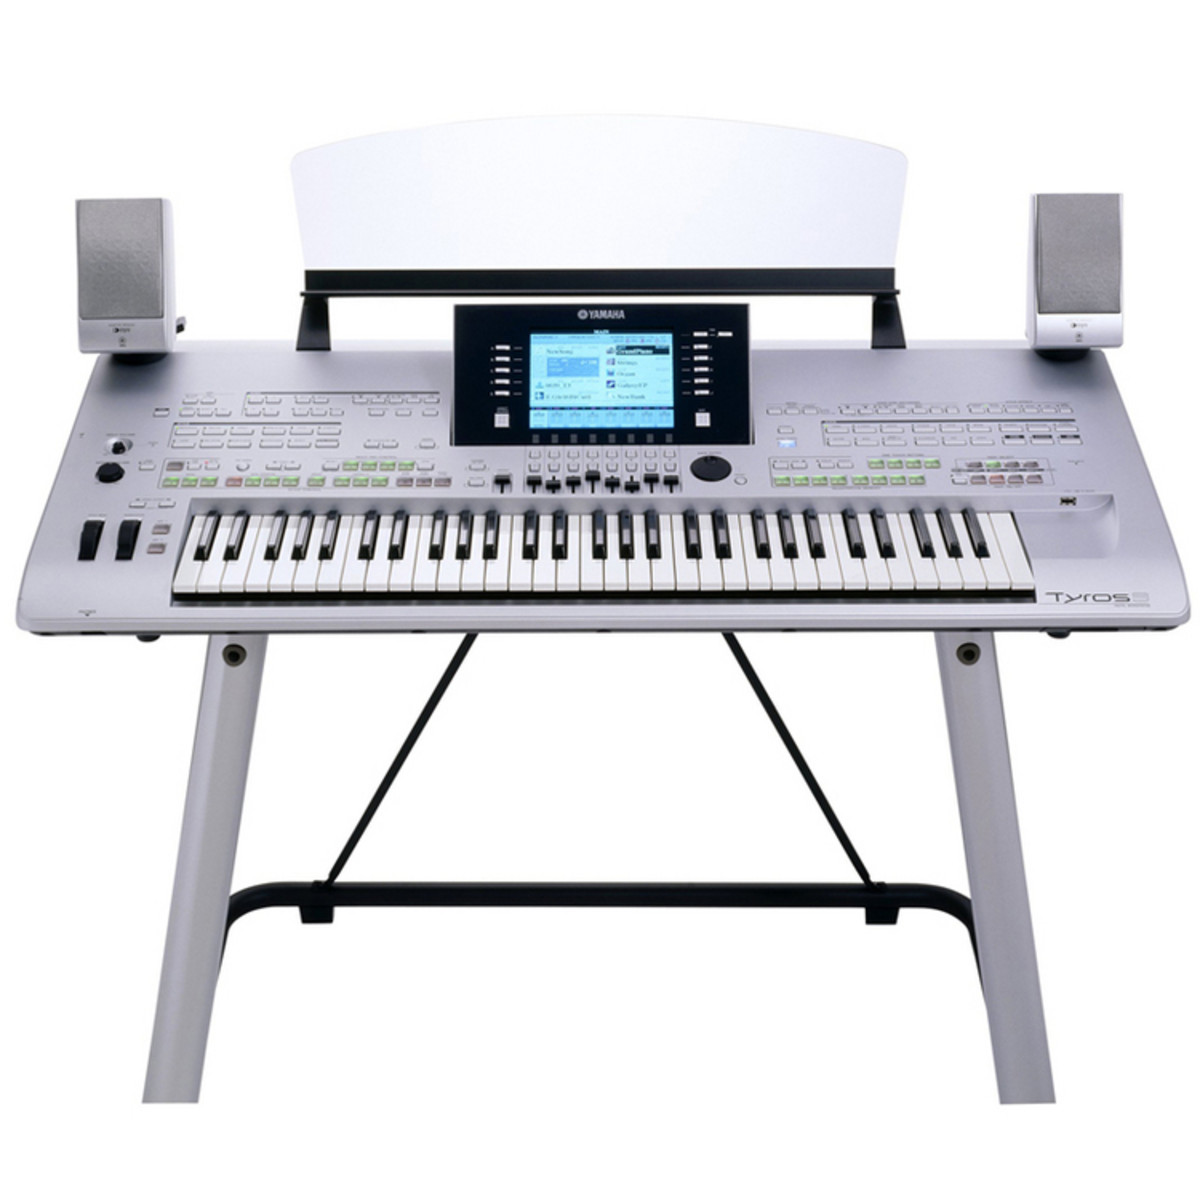 Yamaha TYROS 3 Digital Workstation Including MS02 Speakers